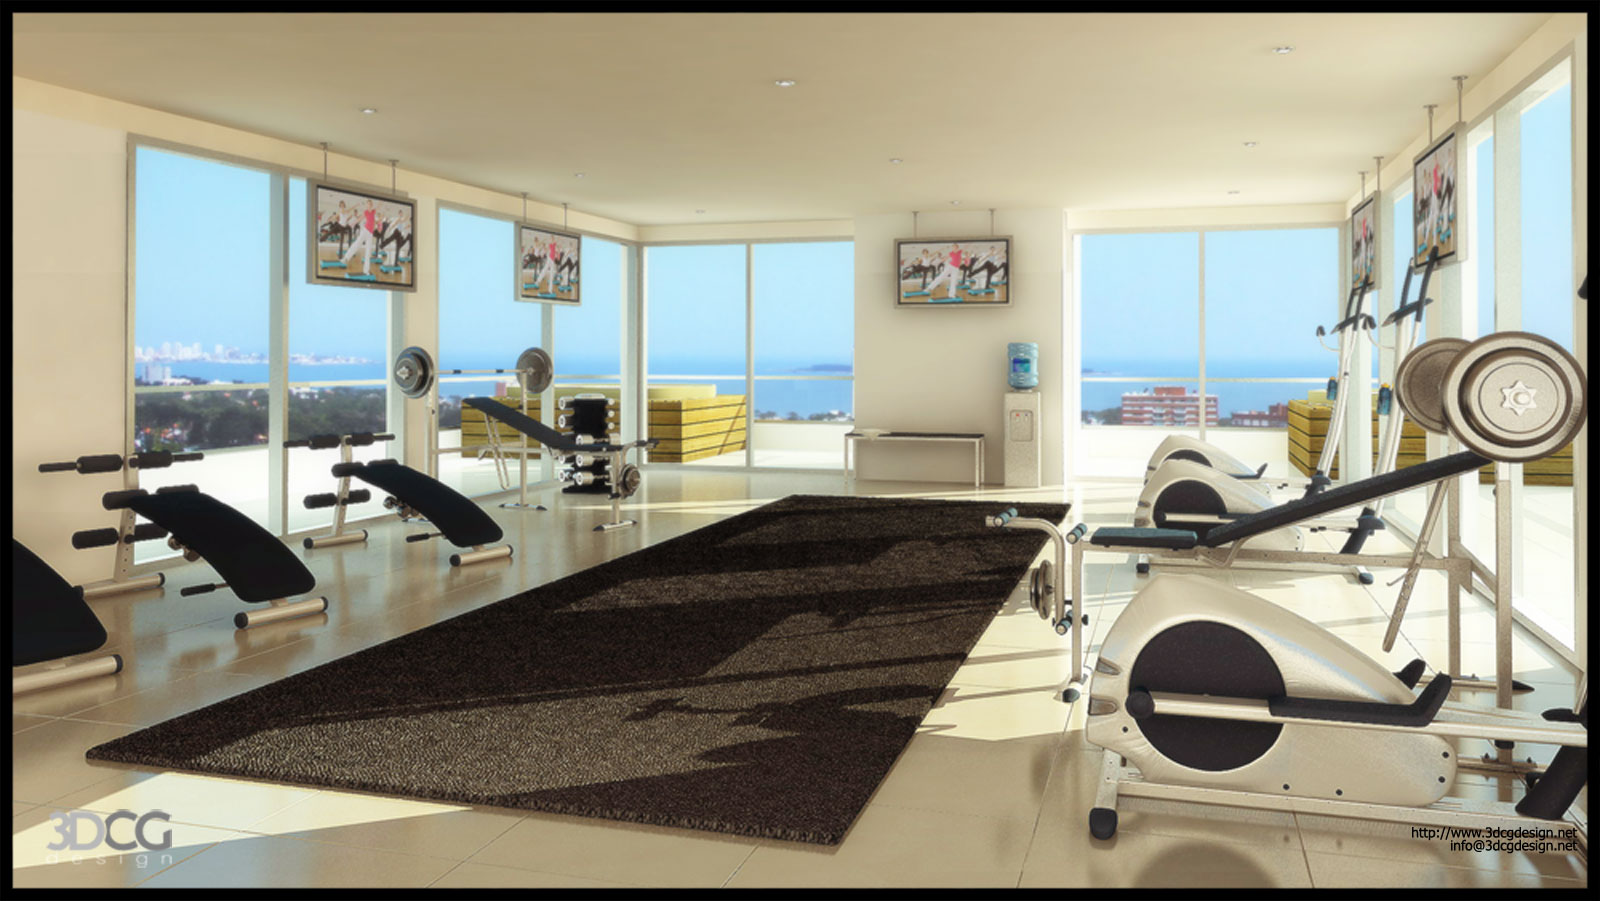 Home Gym Design Tips